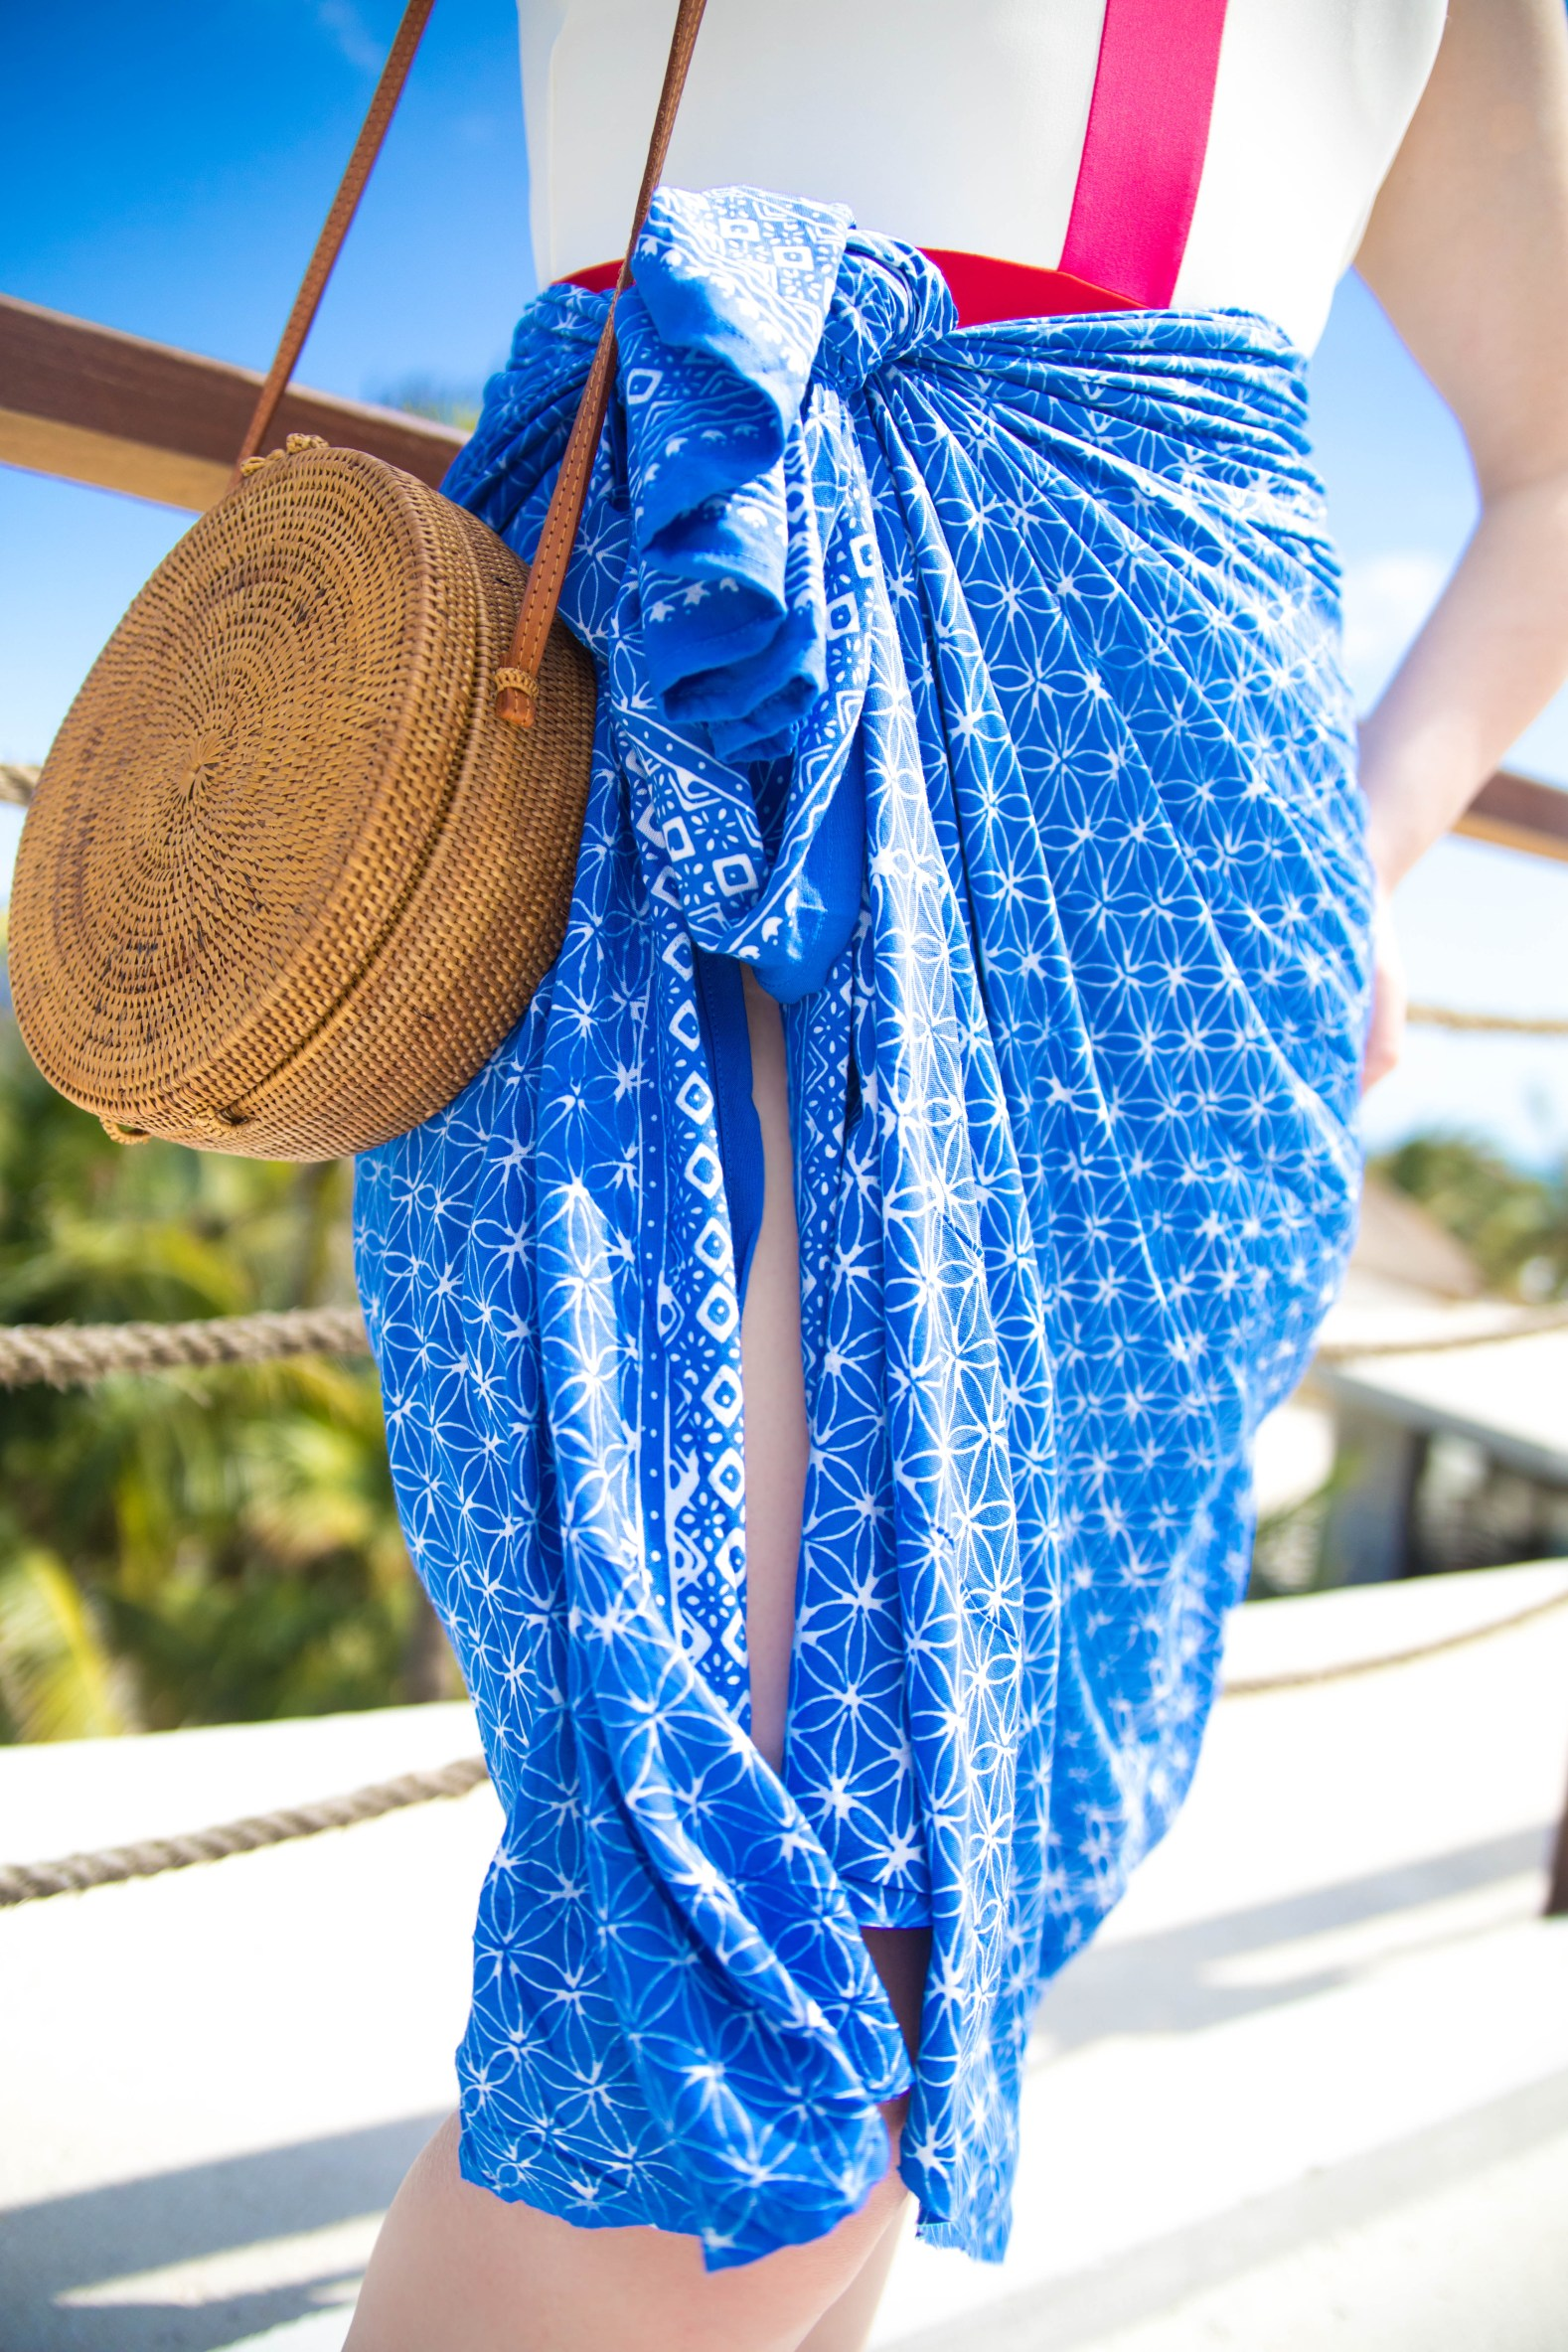 What I Wore in Tulum Summersalt Swim Lilly Pulitzer Eastland Shoes Nakd Swimwear Straw Bags